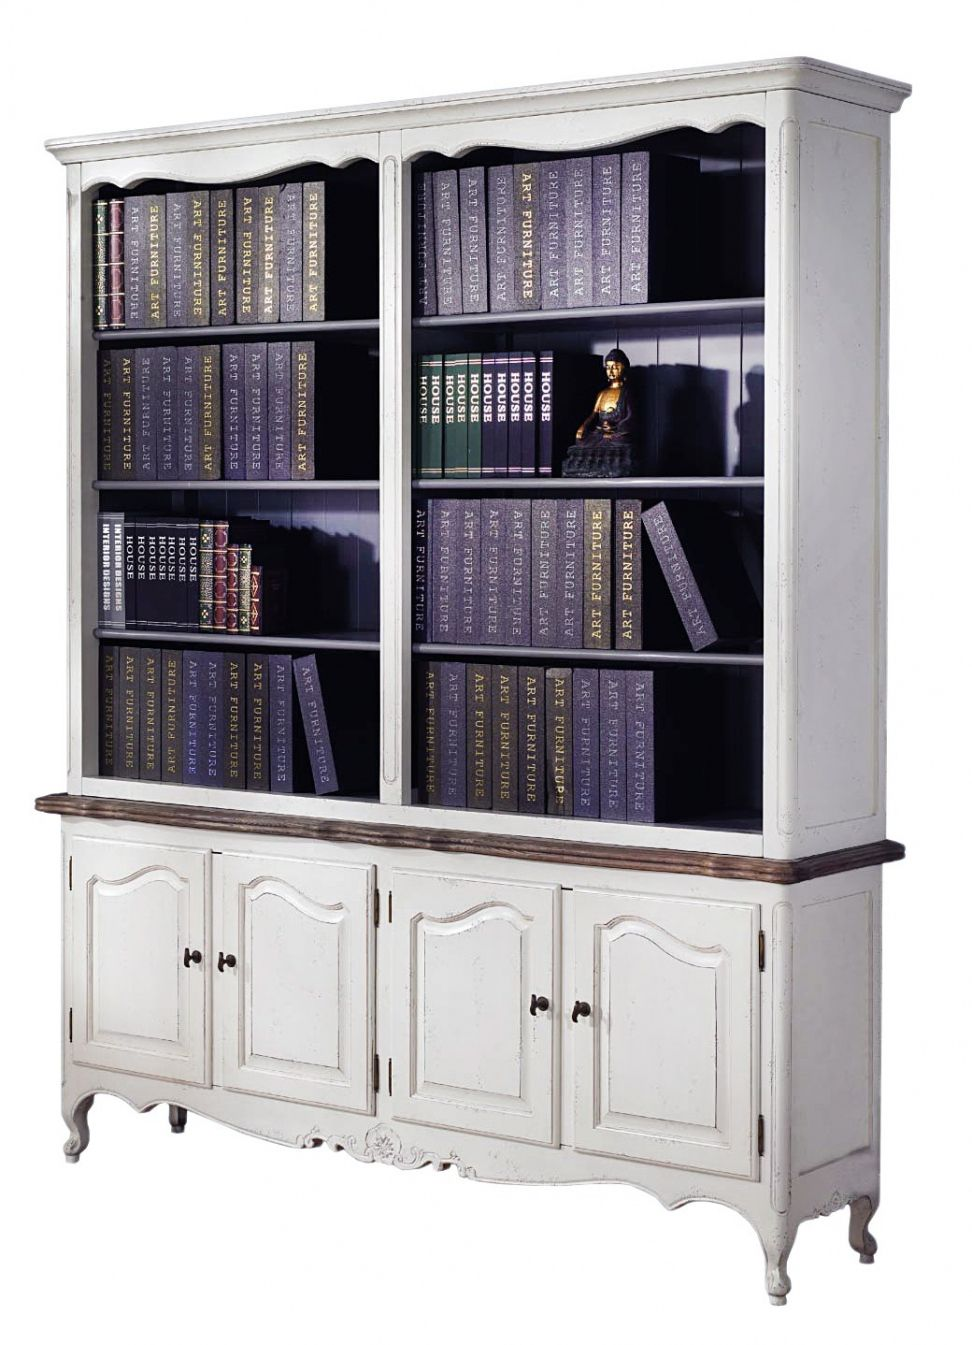 Merveilleux 100+ French Provincial Bookcase   Modern European Furniture Check More At  Http://